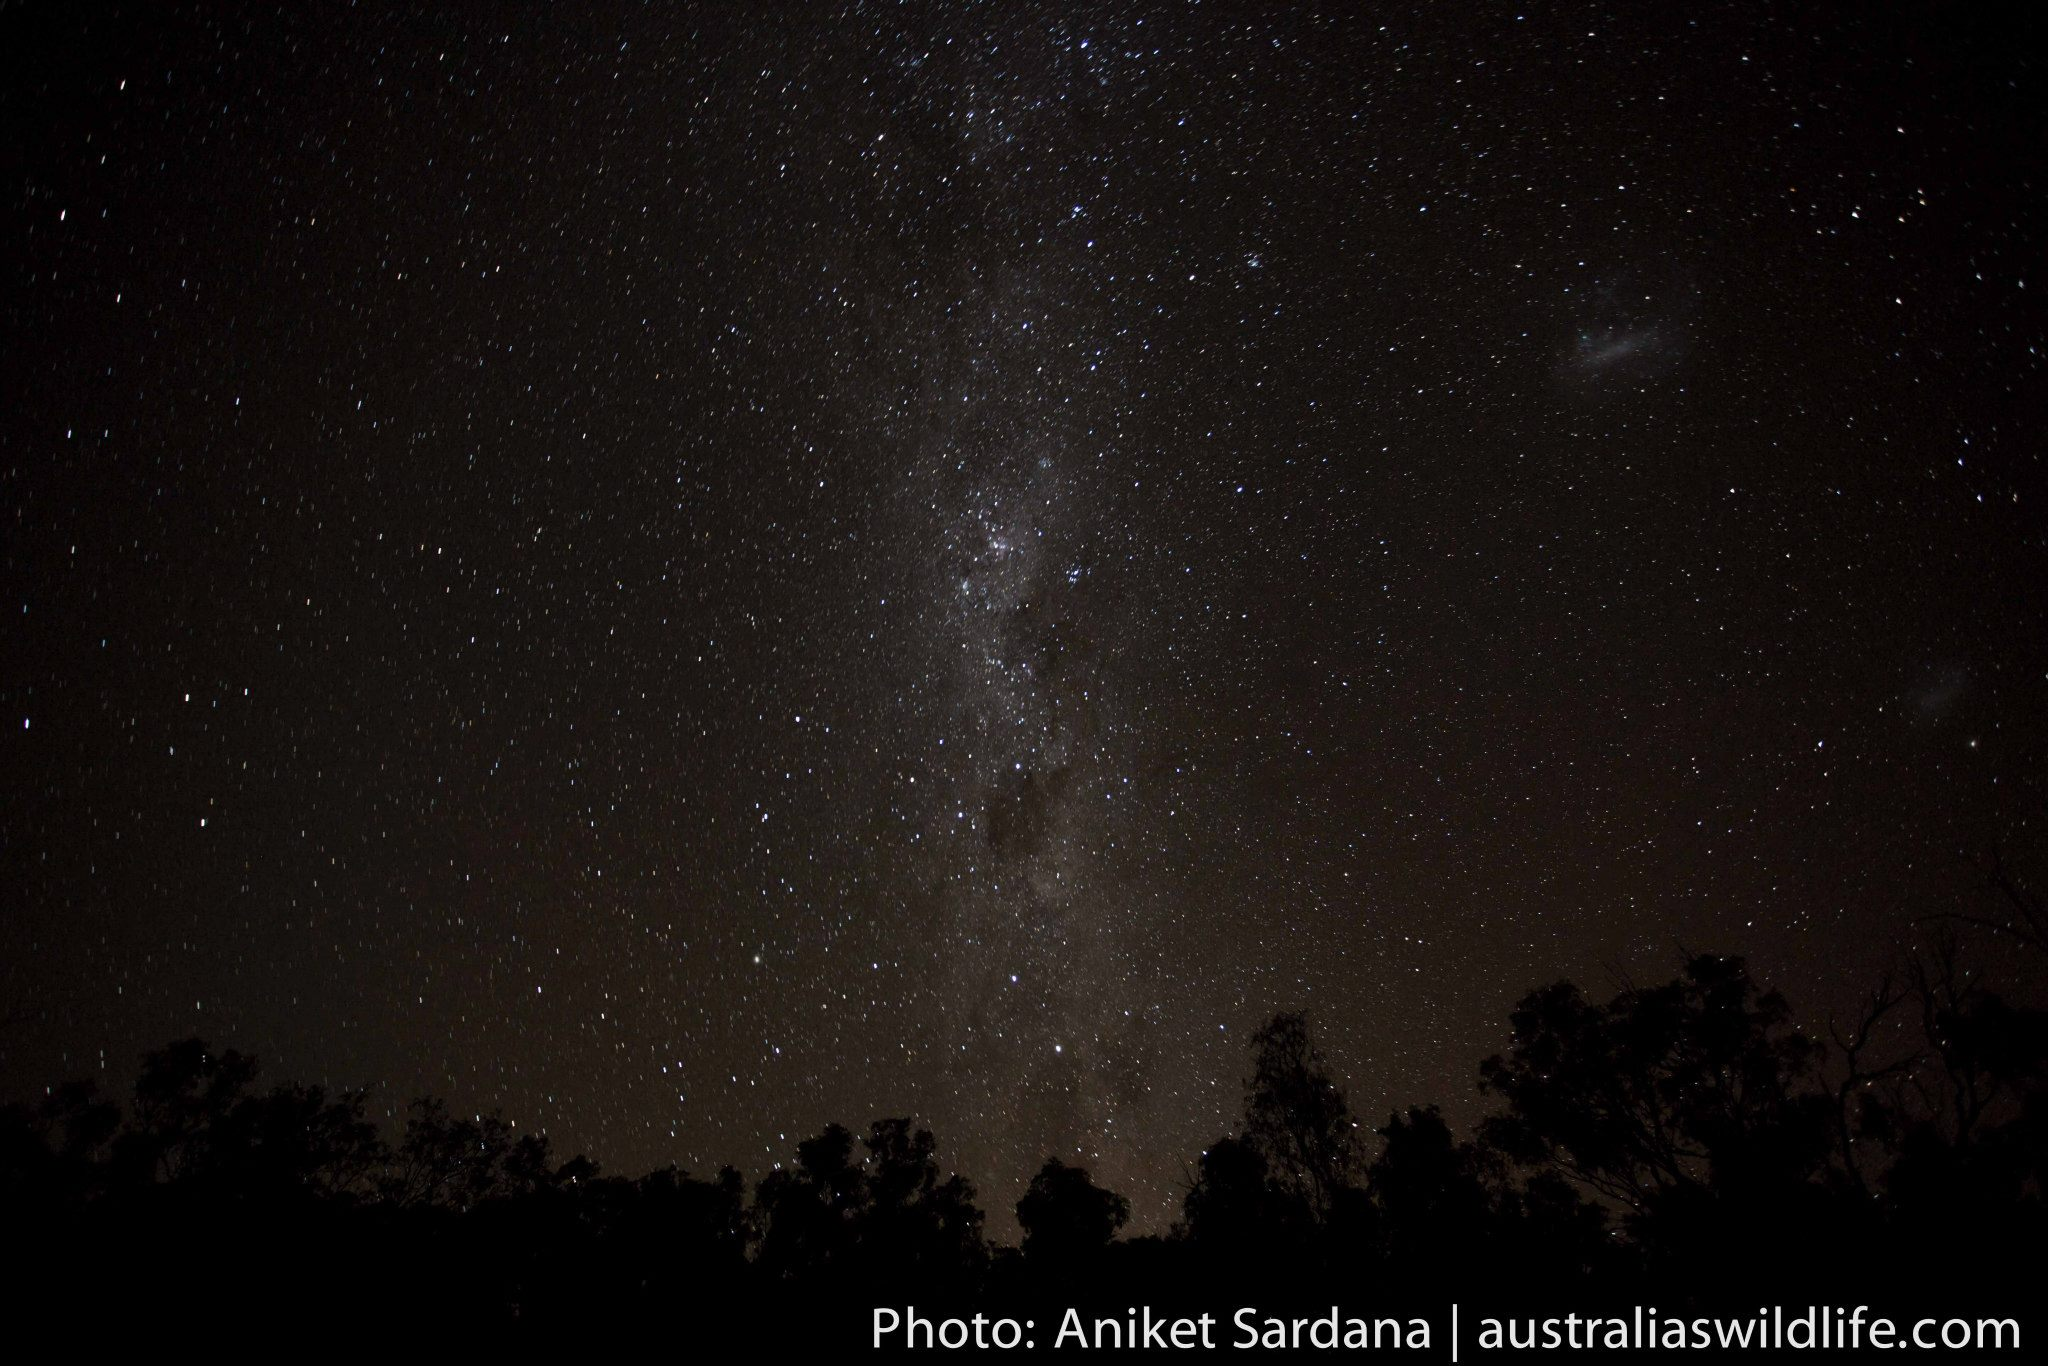 An night time image of the stars above the trees